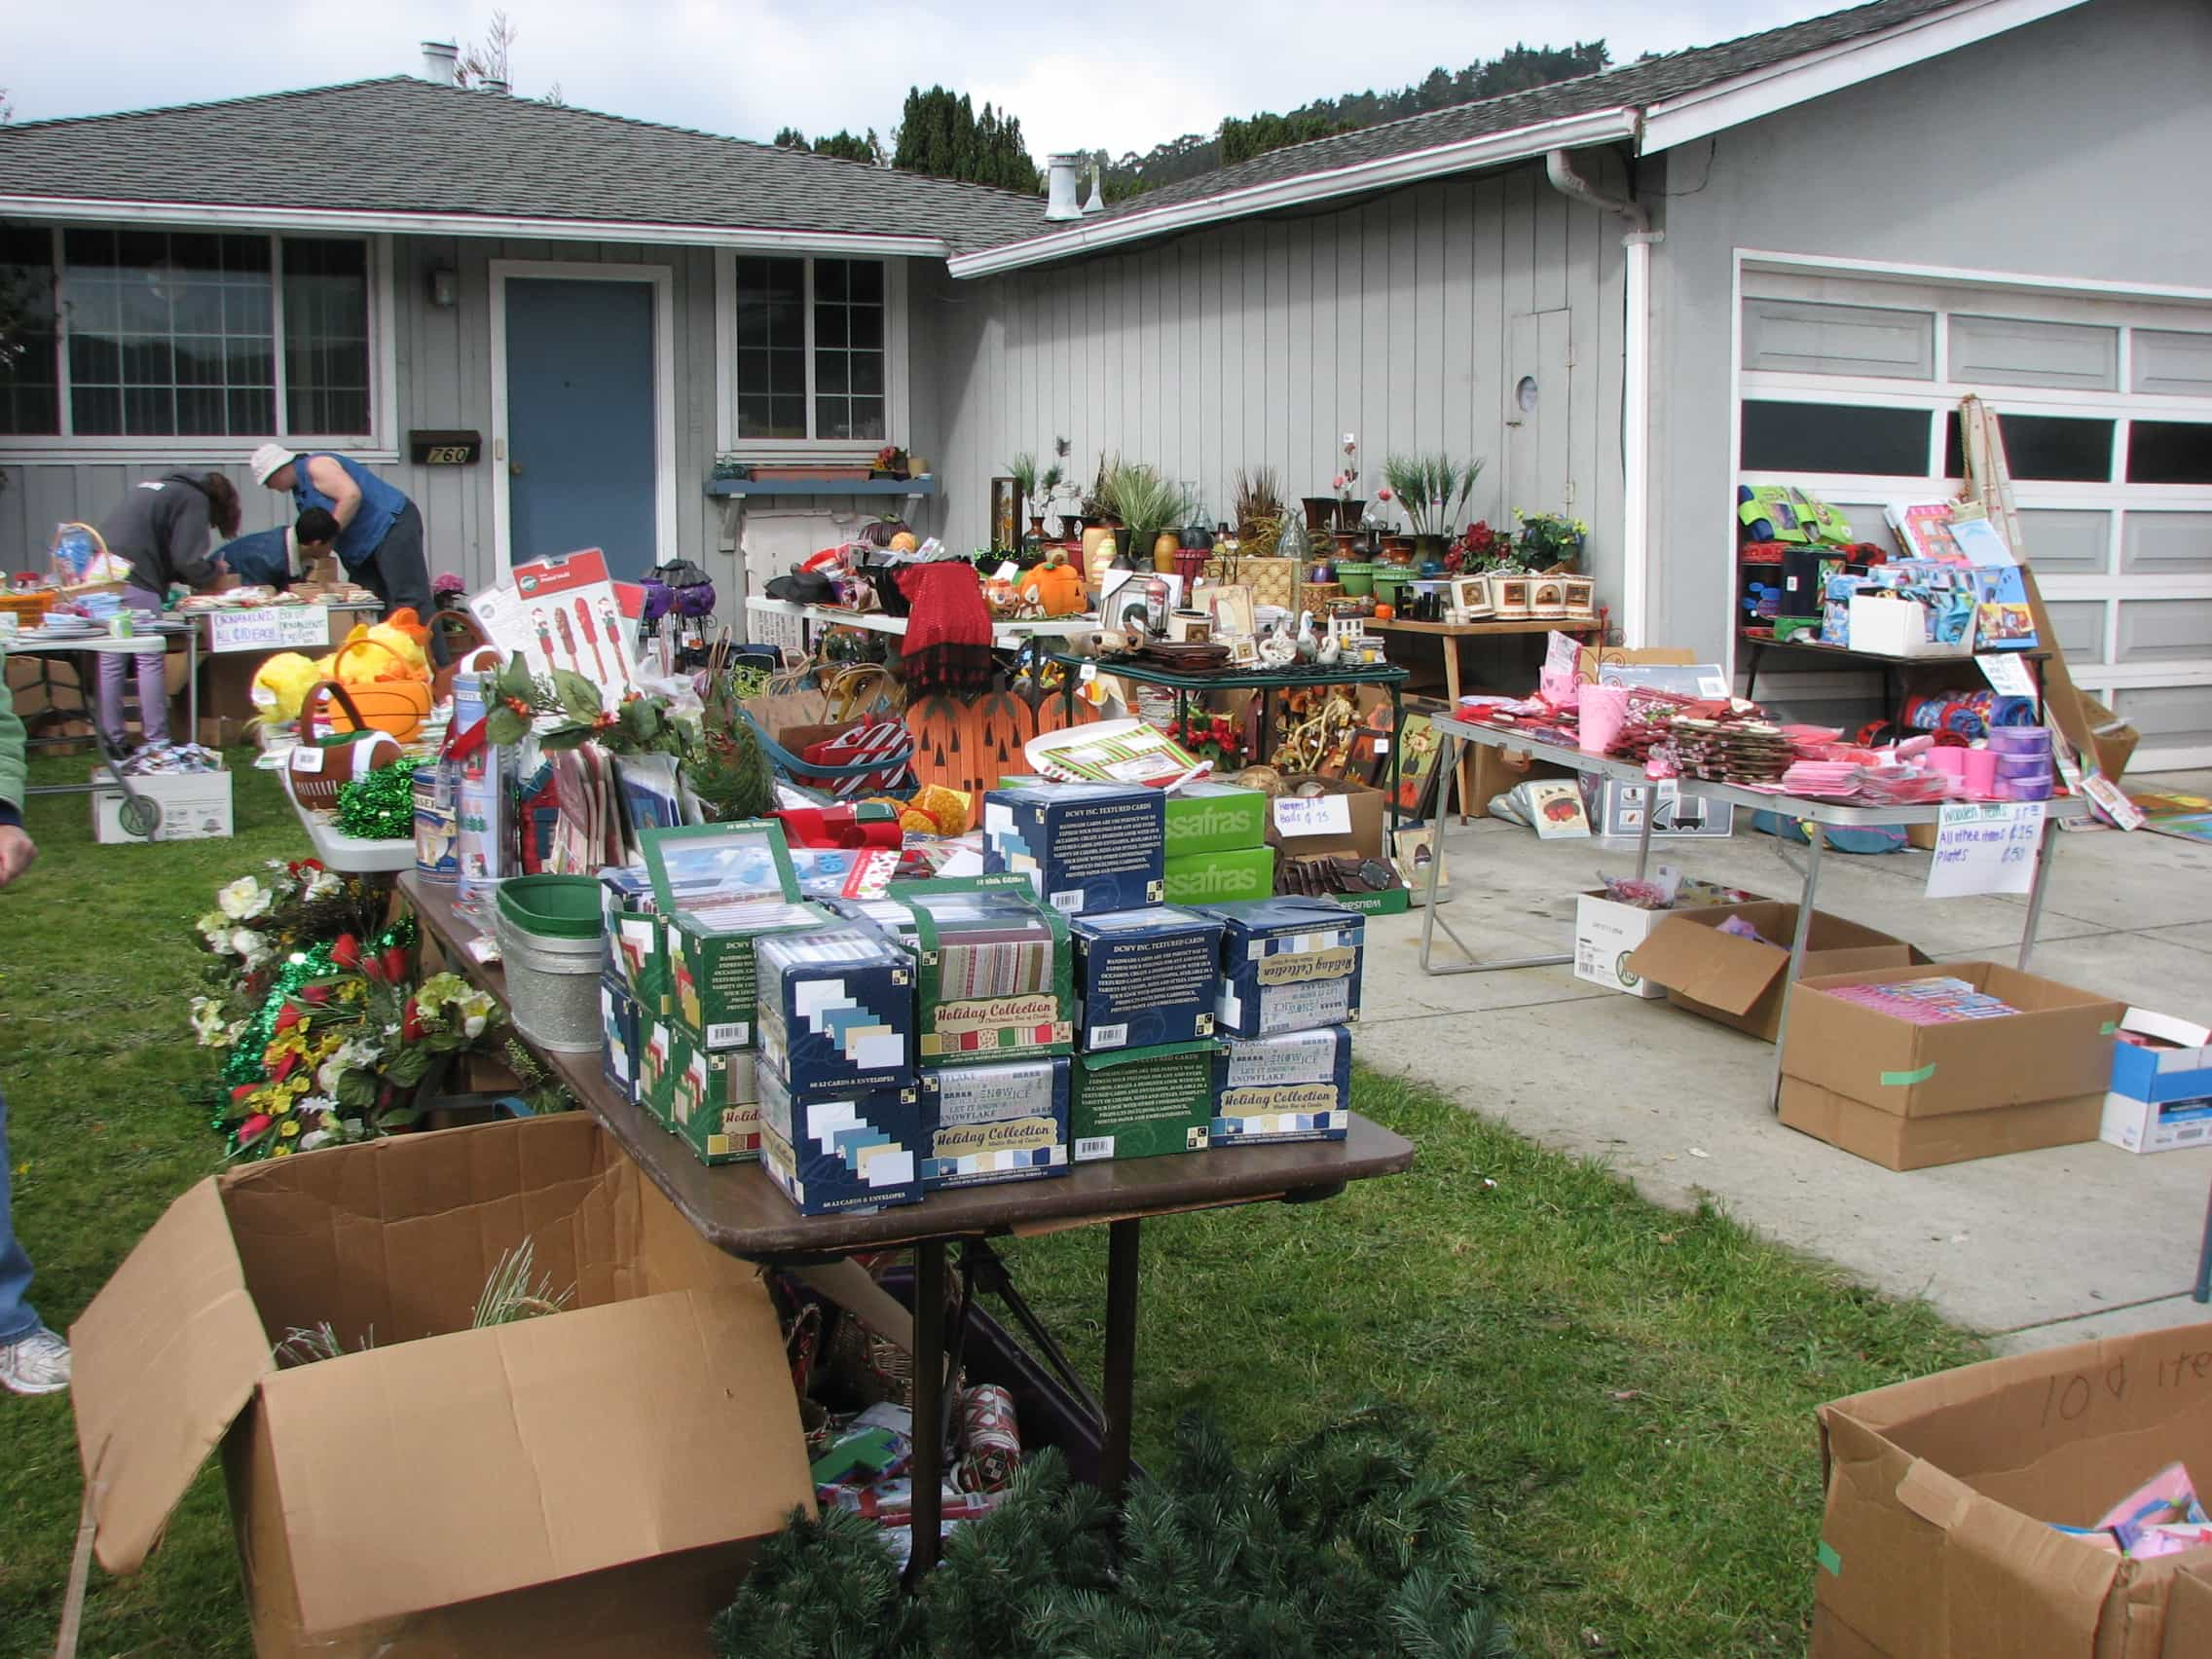 How to Save Money and Declutter When Moving · Via www.sweethings.net